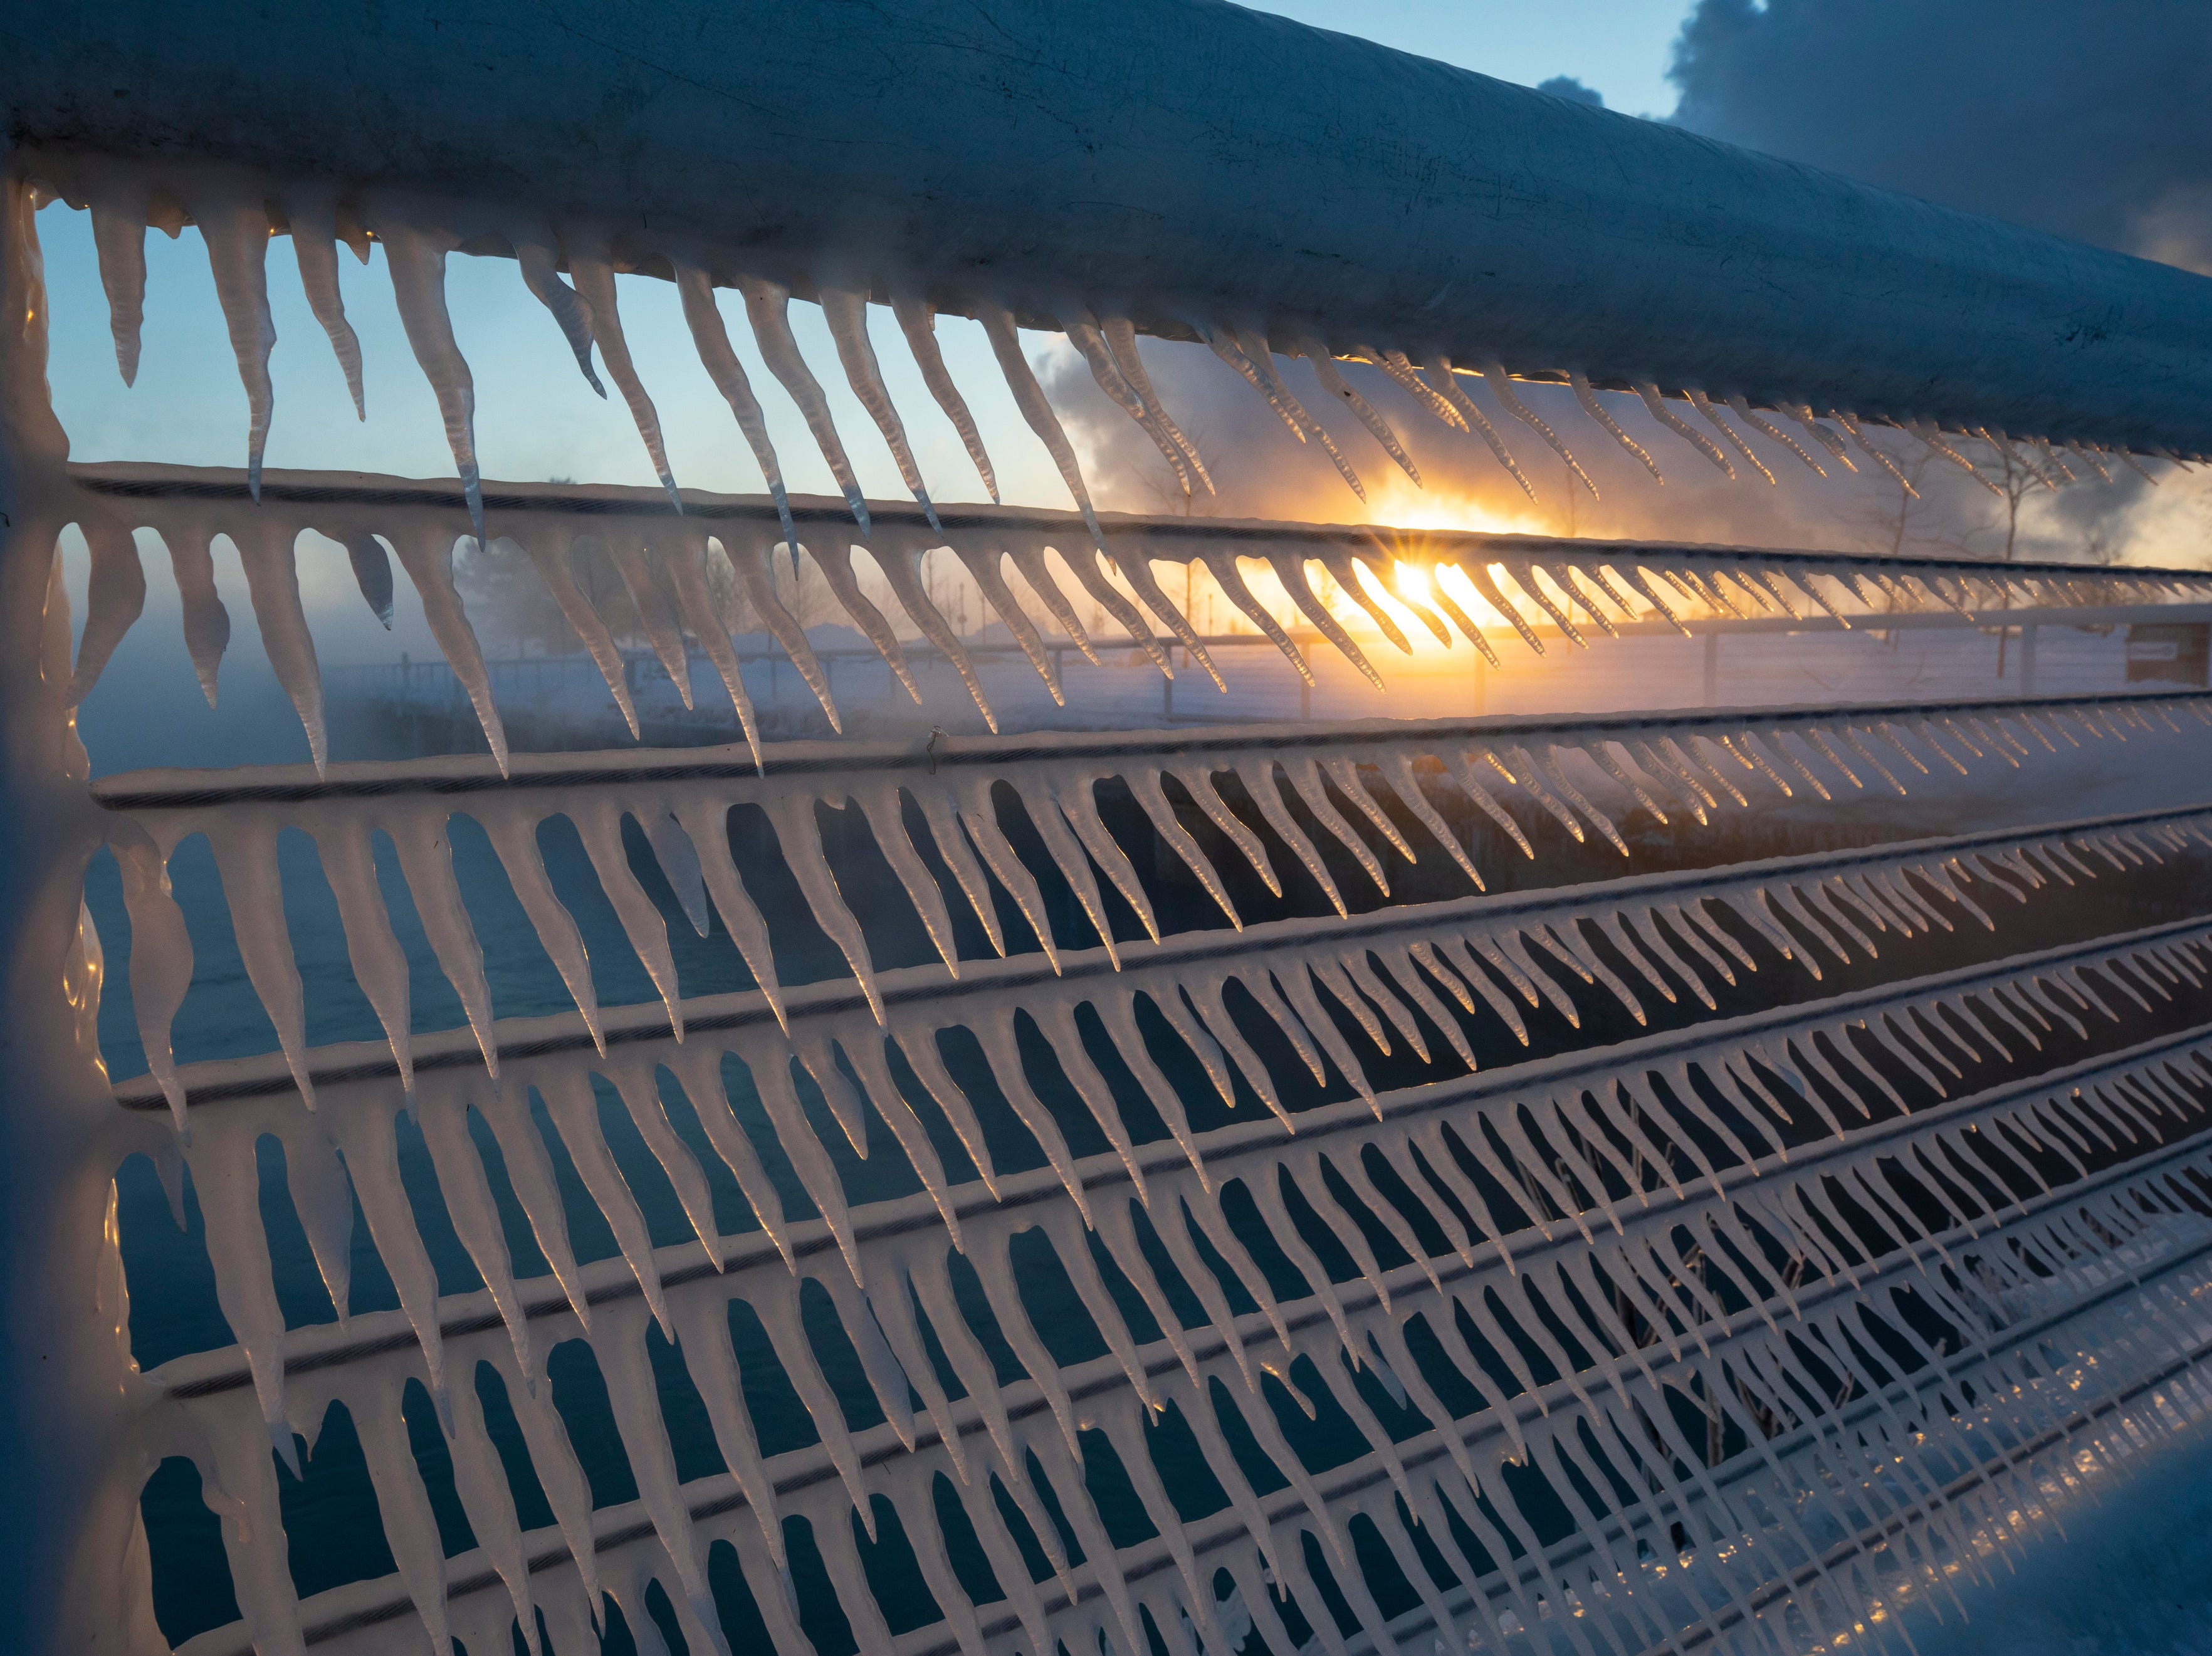 Icicles form on a railing as the sun rises in the harbor in Port Washington, Wis., on Wednesday, Jan. 30, 2019 as temperatures were -22 degrees with -50 degree wind chills.